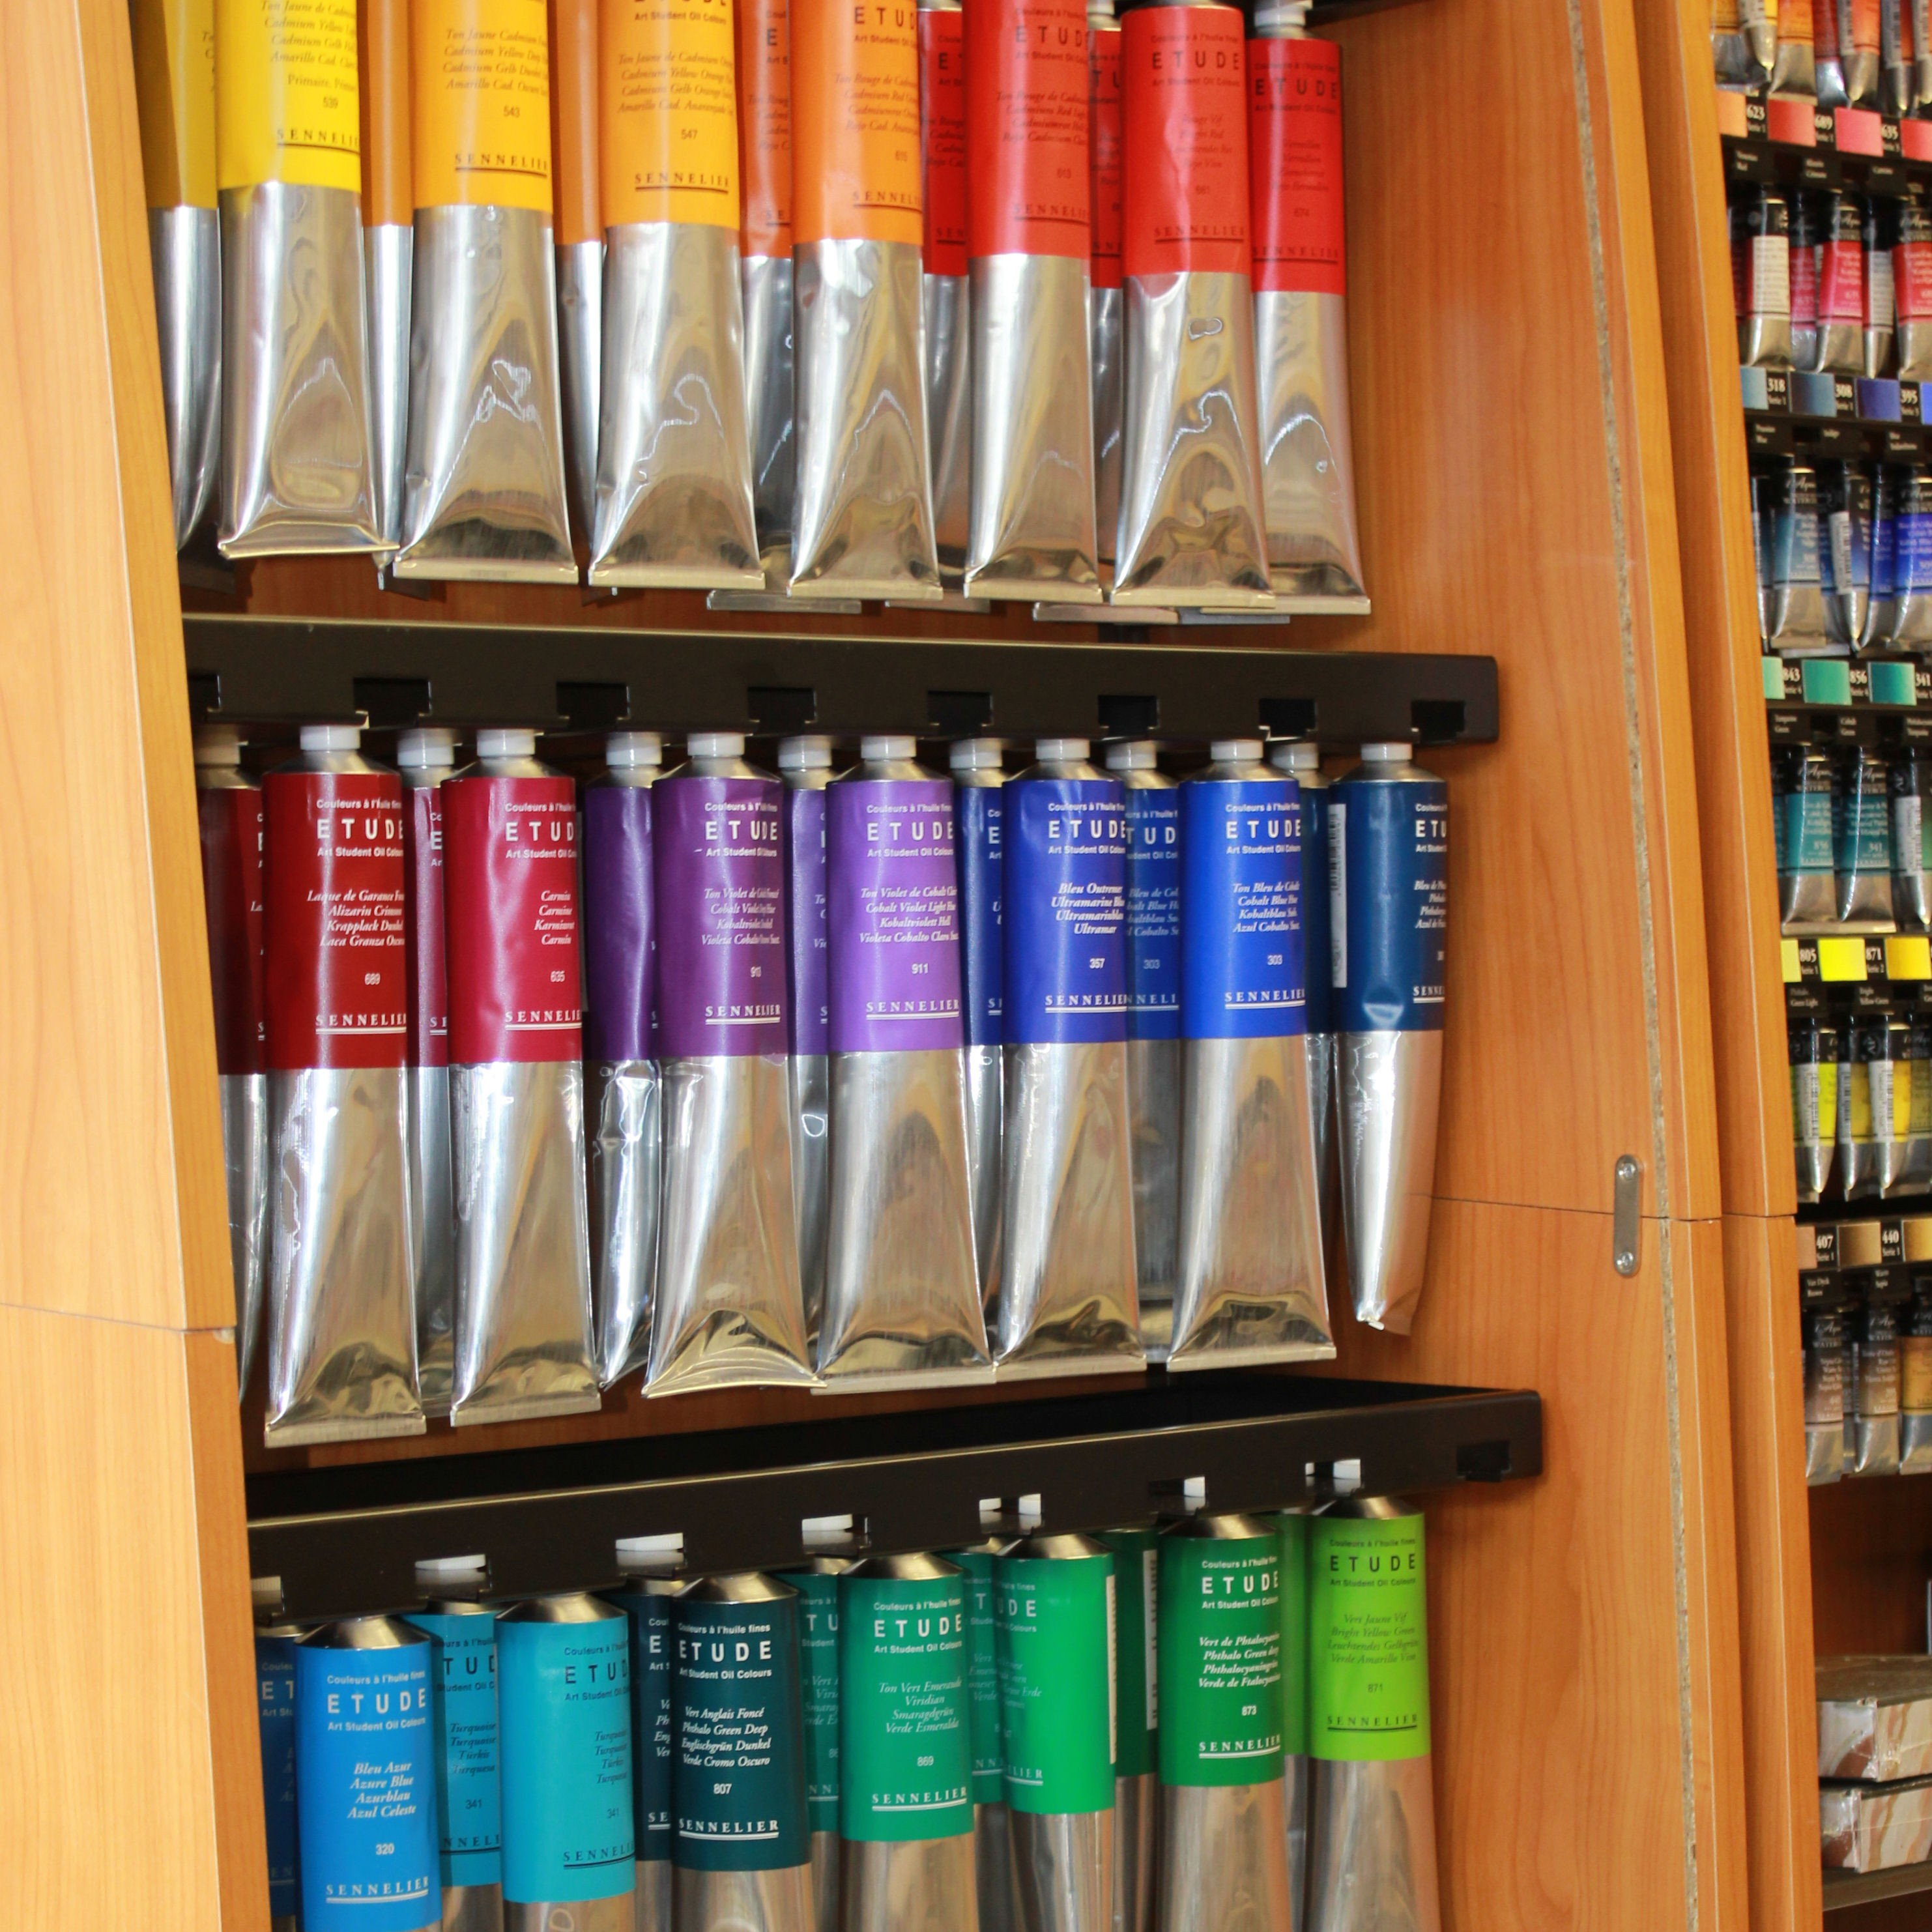 Sennelier Etude student oil paint assorted 200ml stand